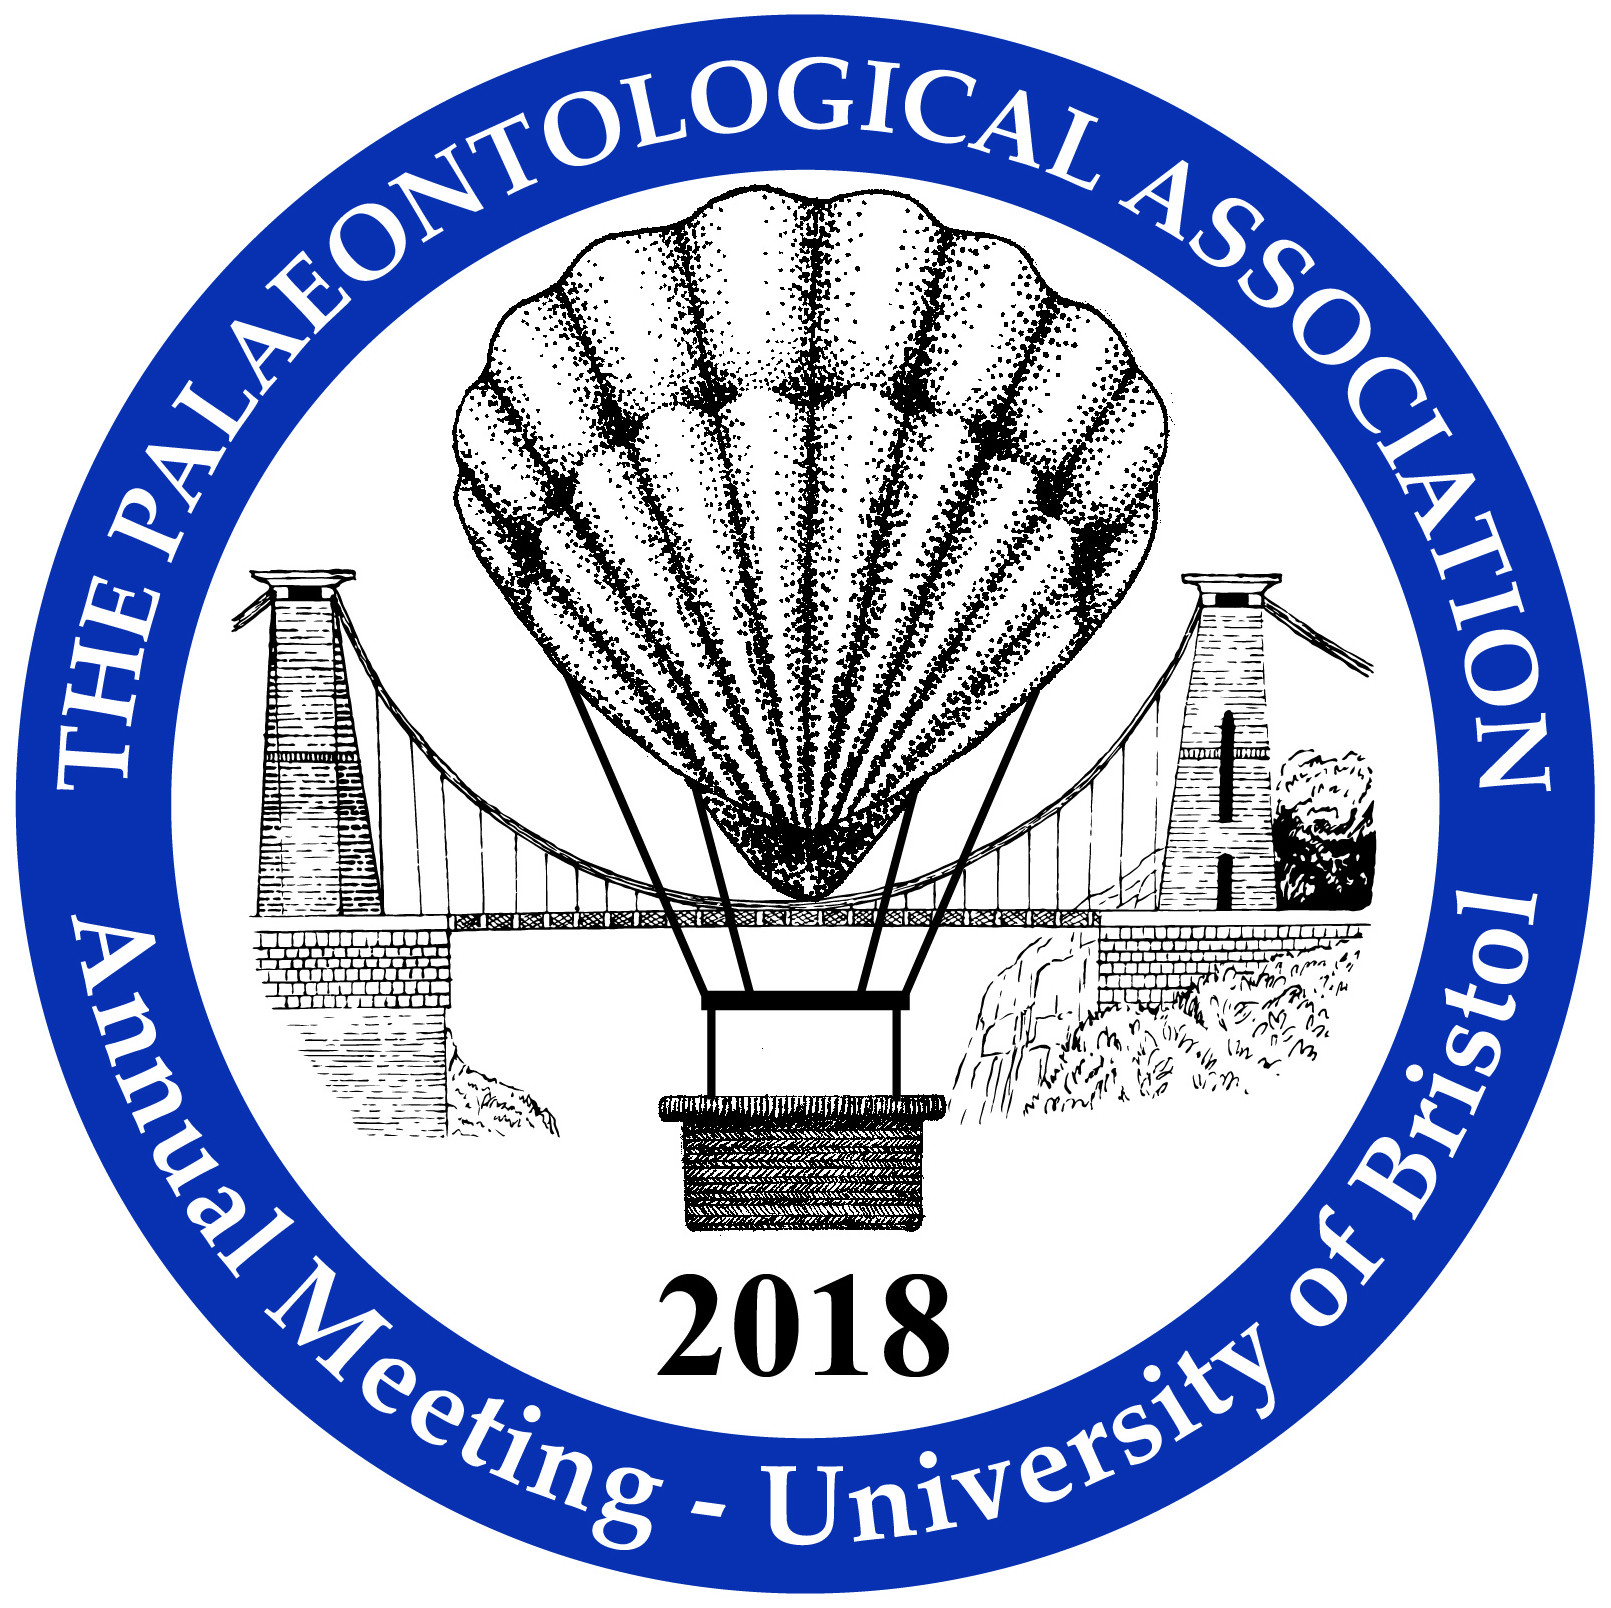 Annual Meeting 2018 - Bristol - Logo